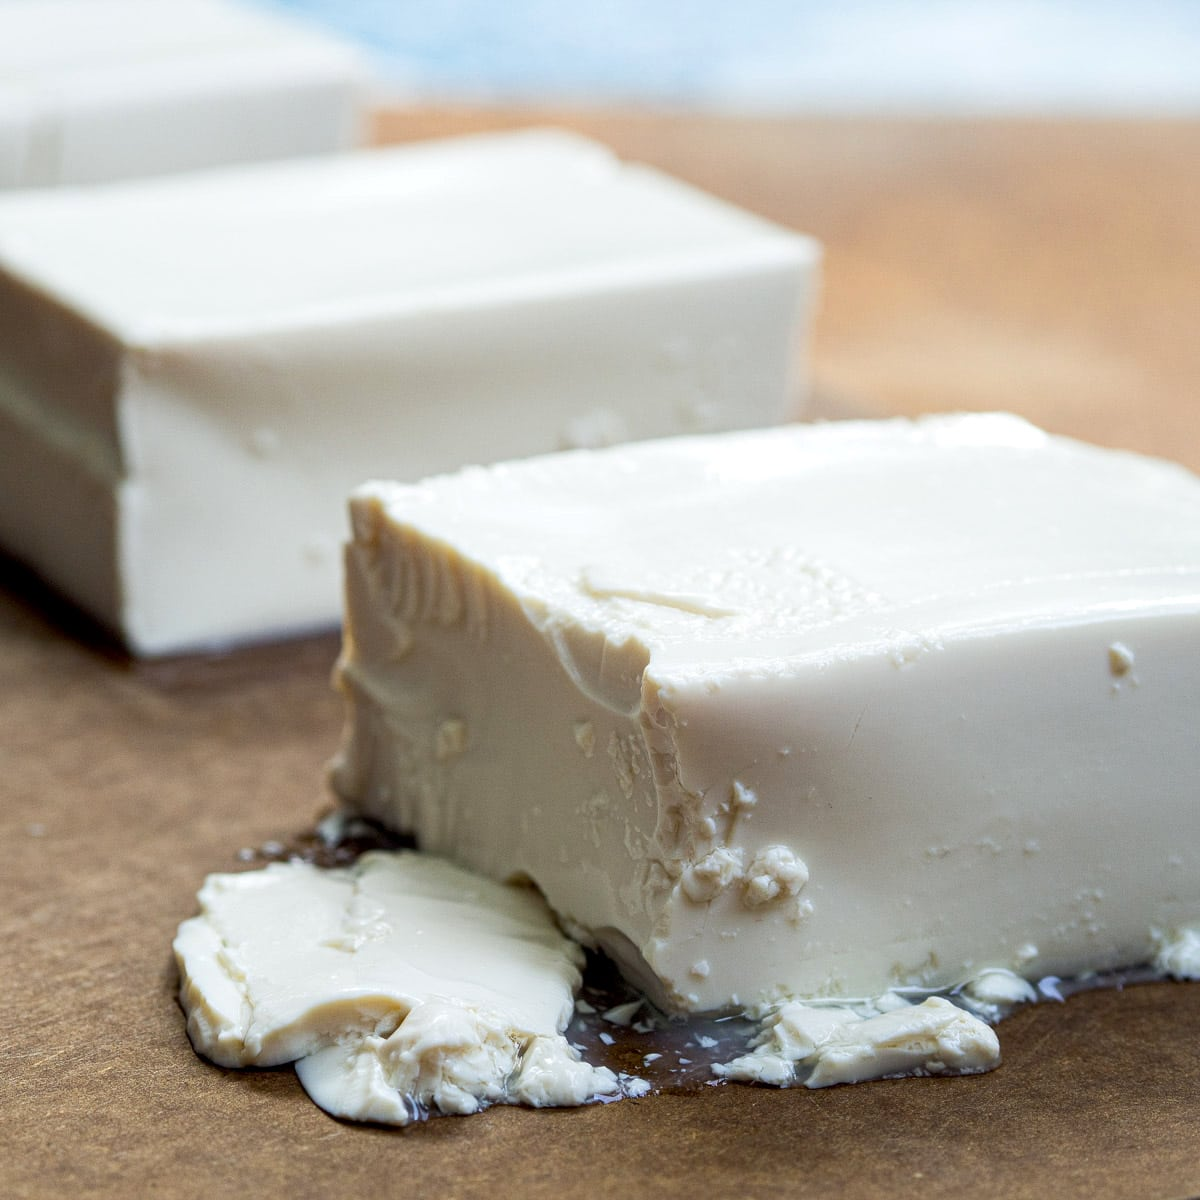 What Is Silken Tofu? The Difference Between Soft vs. Silken Tofu